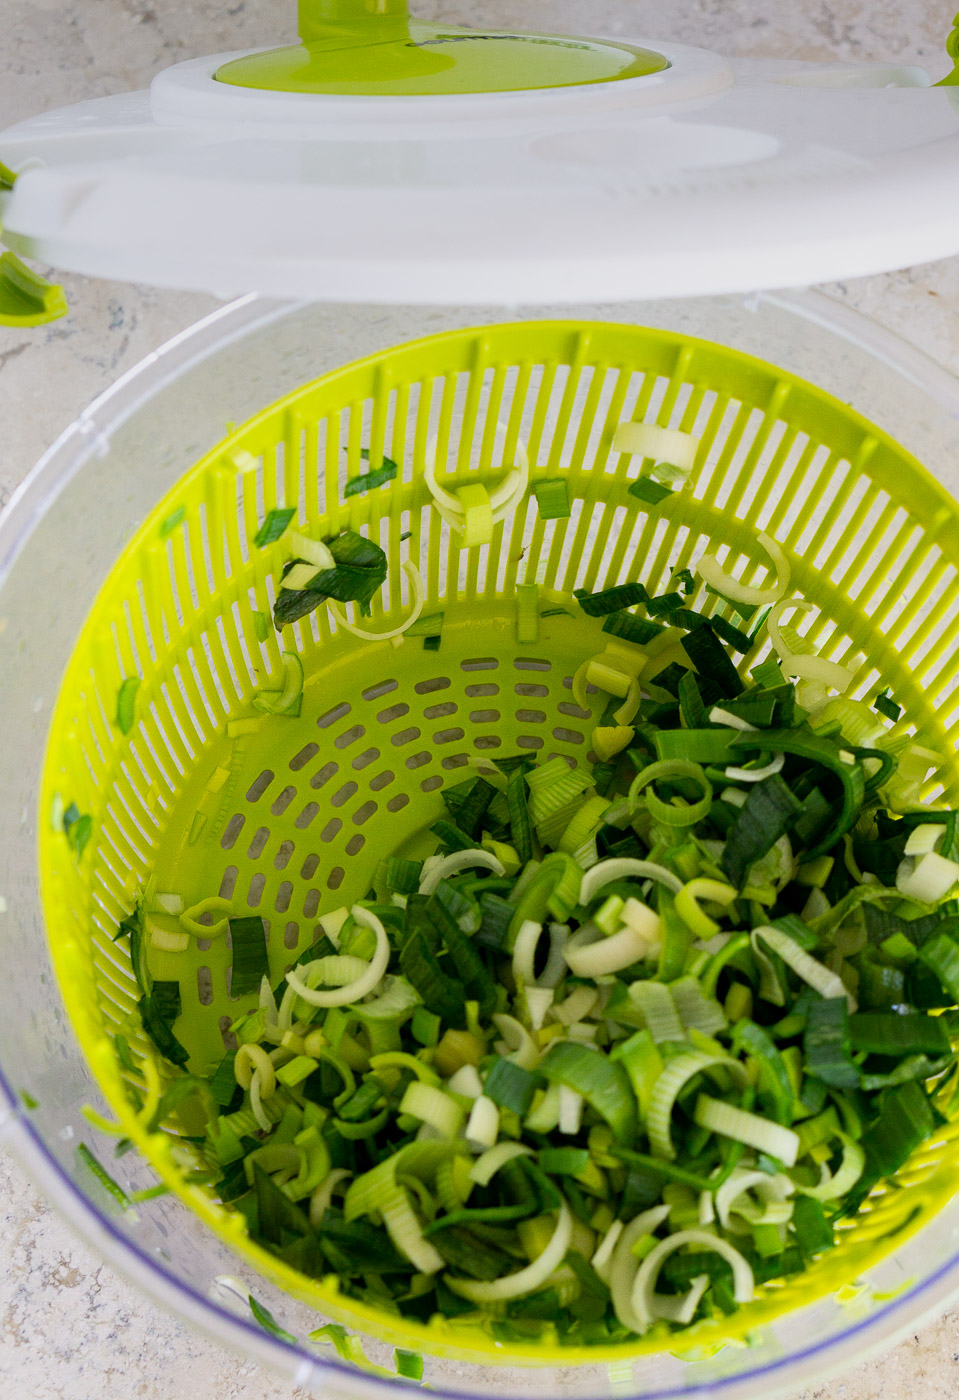 sliced leek in a salad spinner